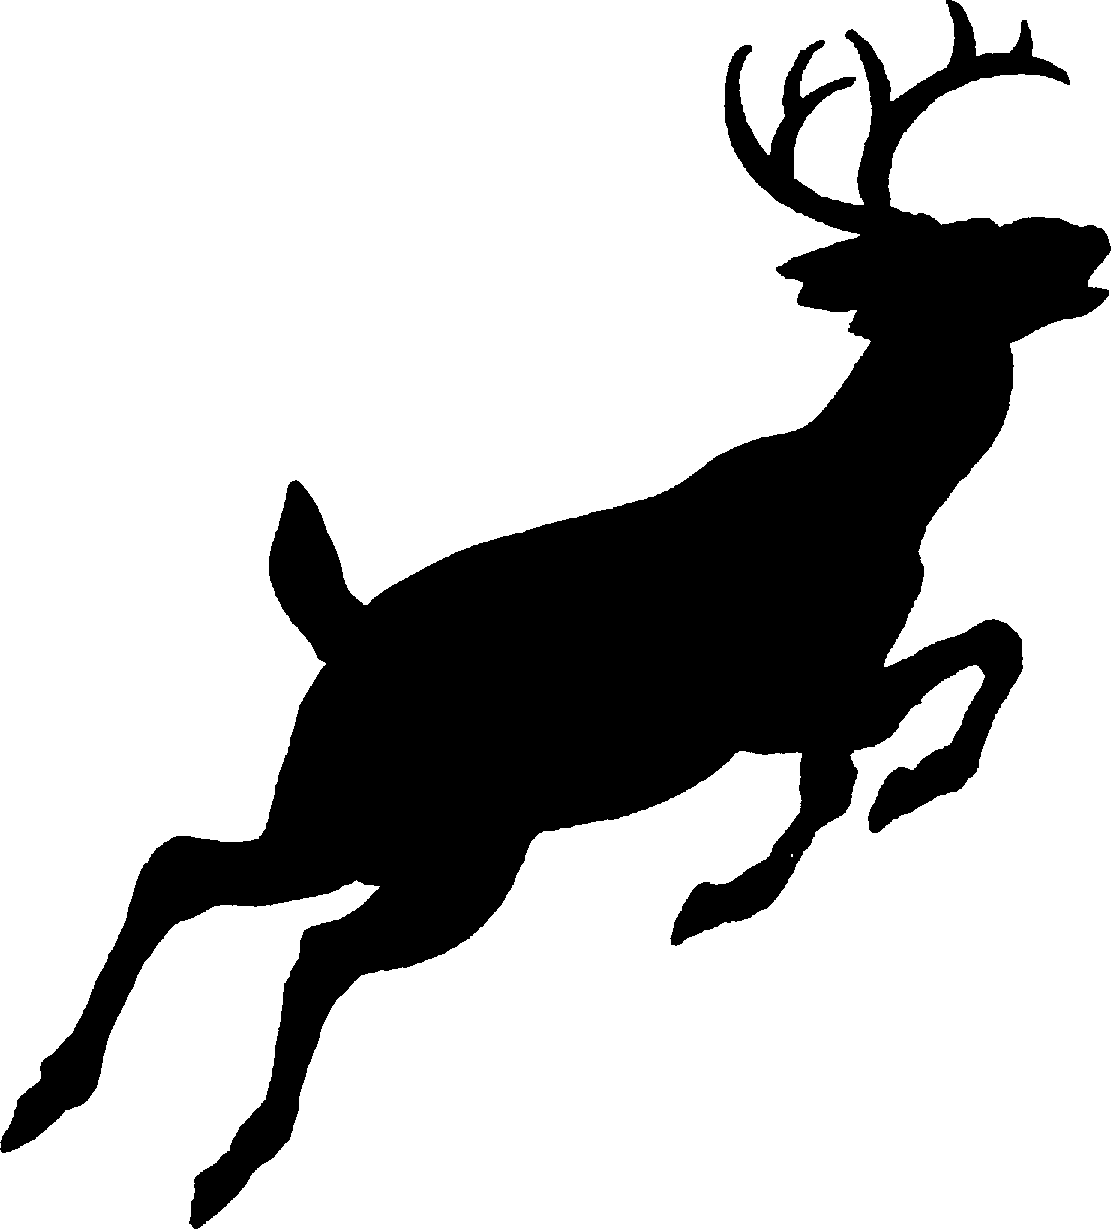 Deer running clipart image transparent White-tailed deer Silhouette Red deer Clip art - Free Deer Pictures ... image transparent